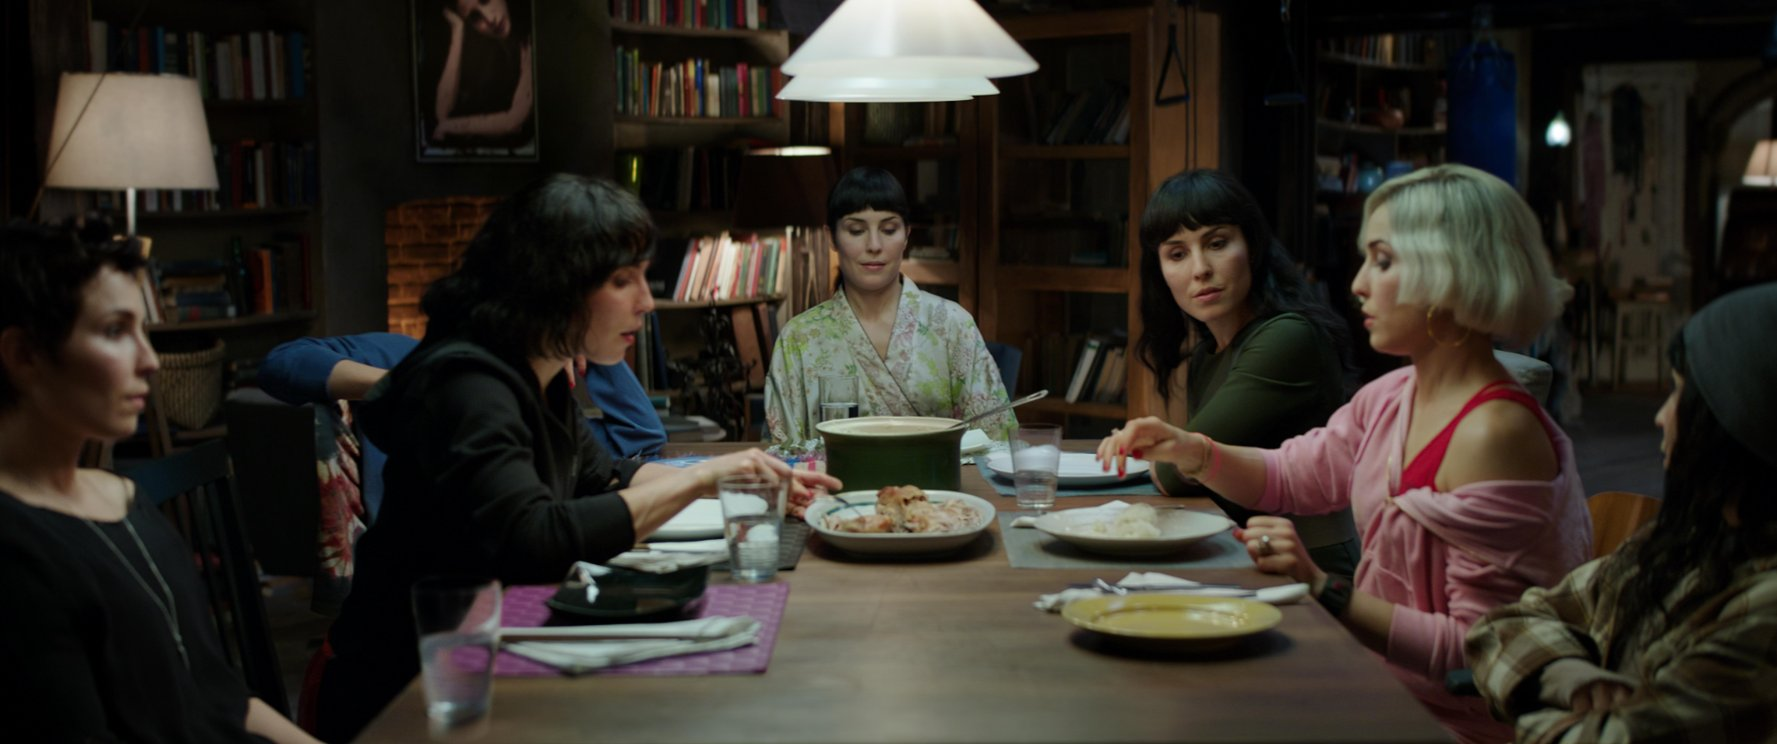 Noomi Rapace in sci-fi action thriller What Happened to Monday